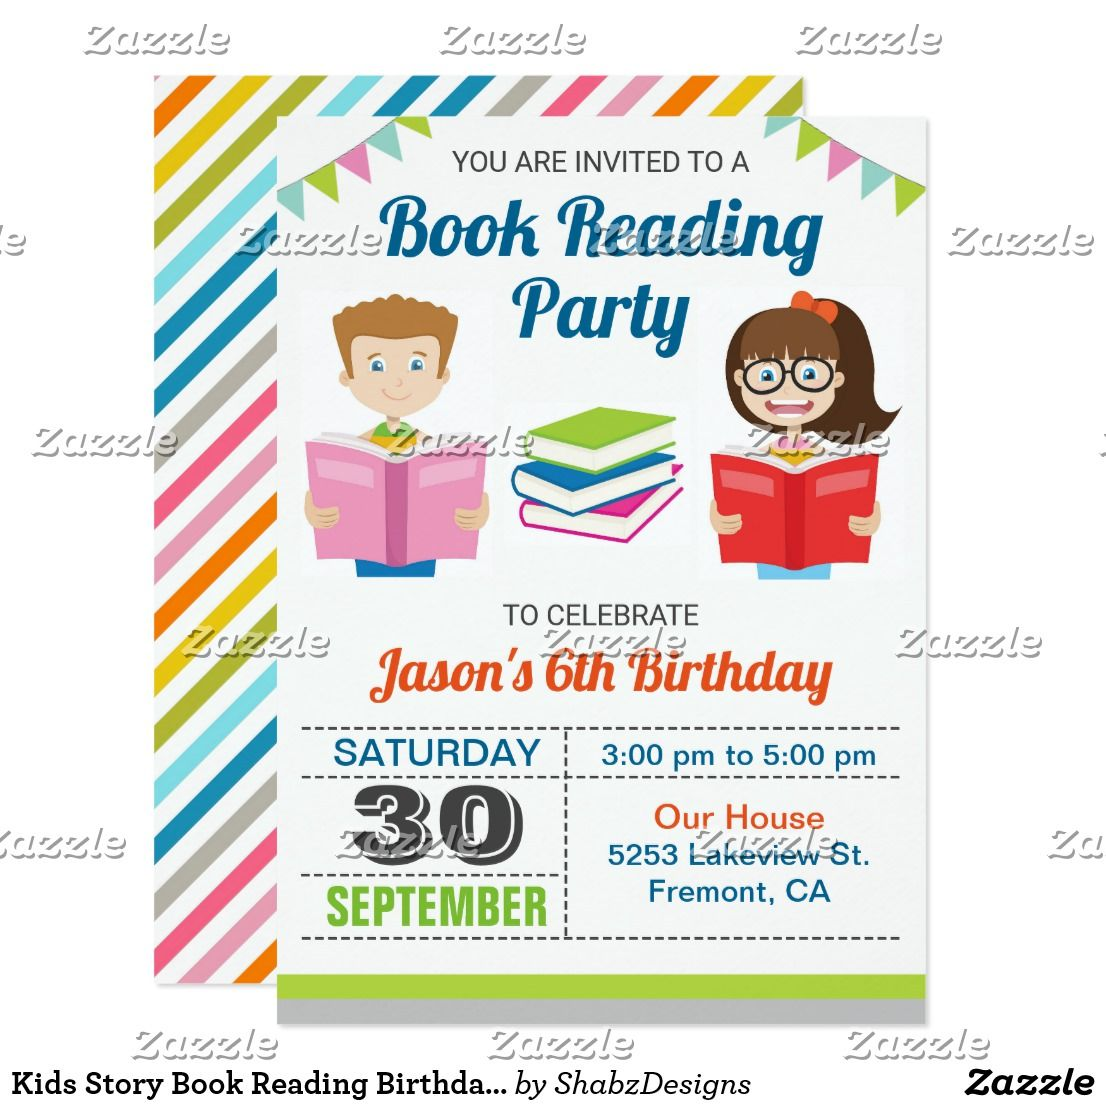 Kids Story Book Reading Birthday Party Invitation Amaze your guests ...